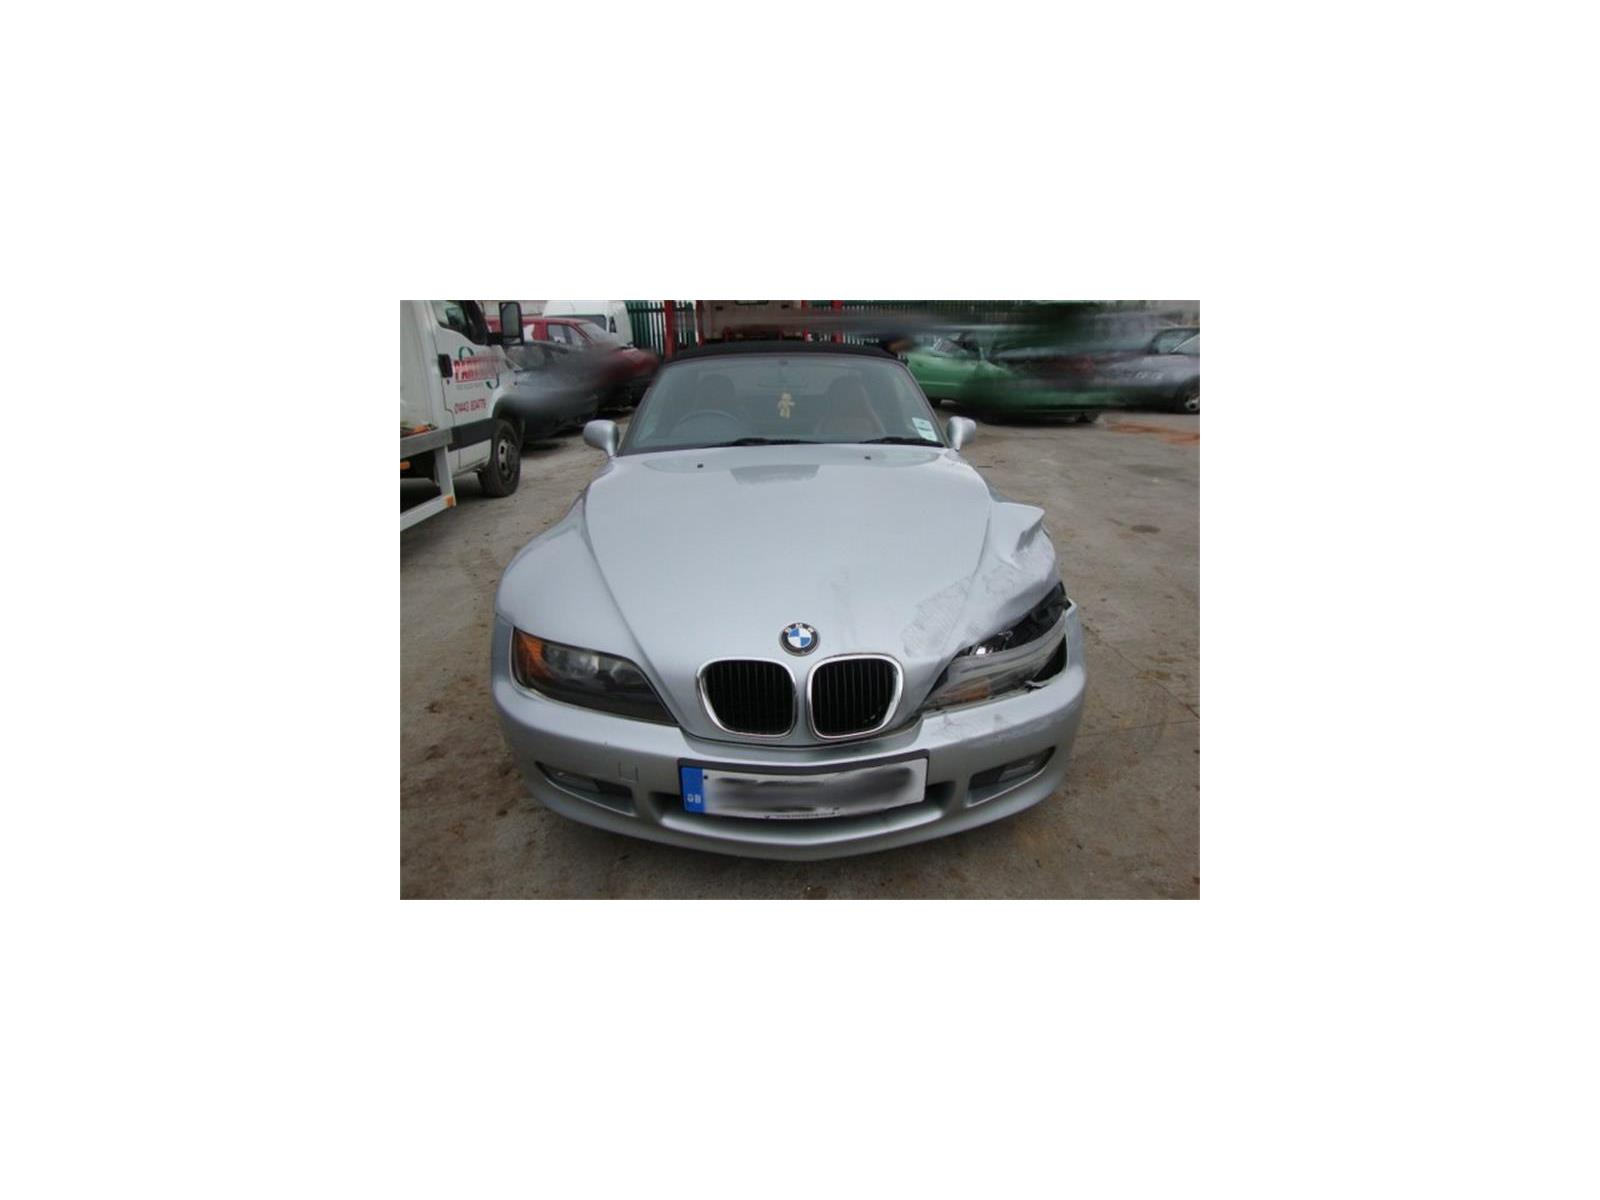 1997 Bmw Z3 1997 To 2003 2 Door Cabriolet Petrol Manual Breaking For Used And Spare Parts From Partmart Automotive Recycling Ltd Motor Salvage Recycled Parts In Hengoed Wales In Wales